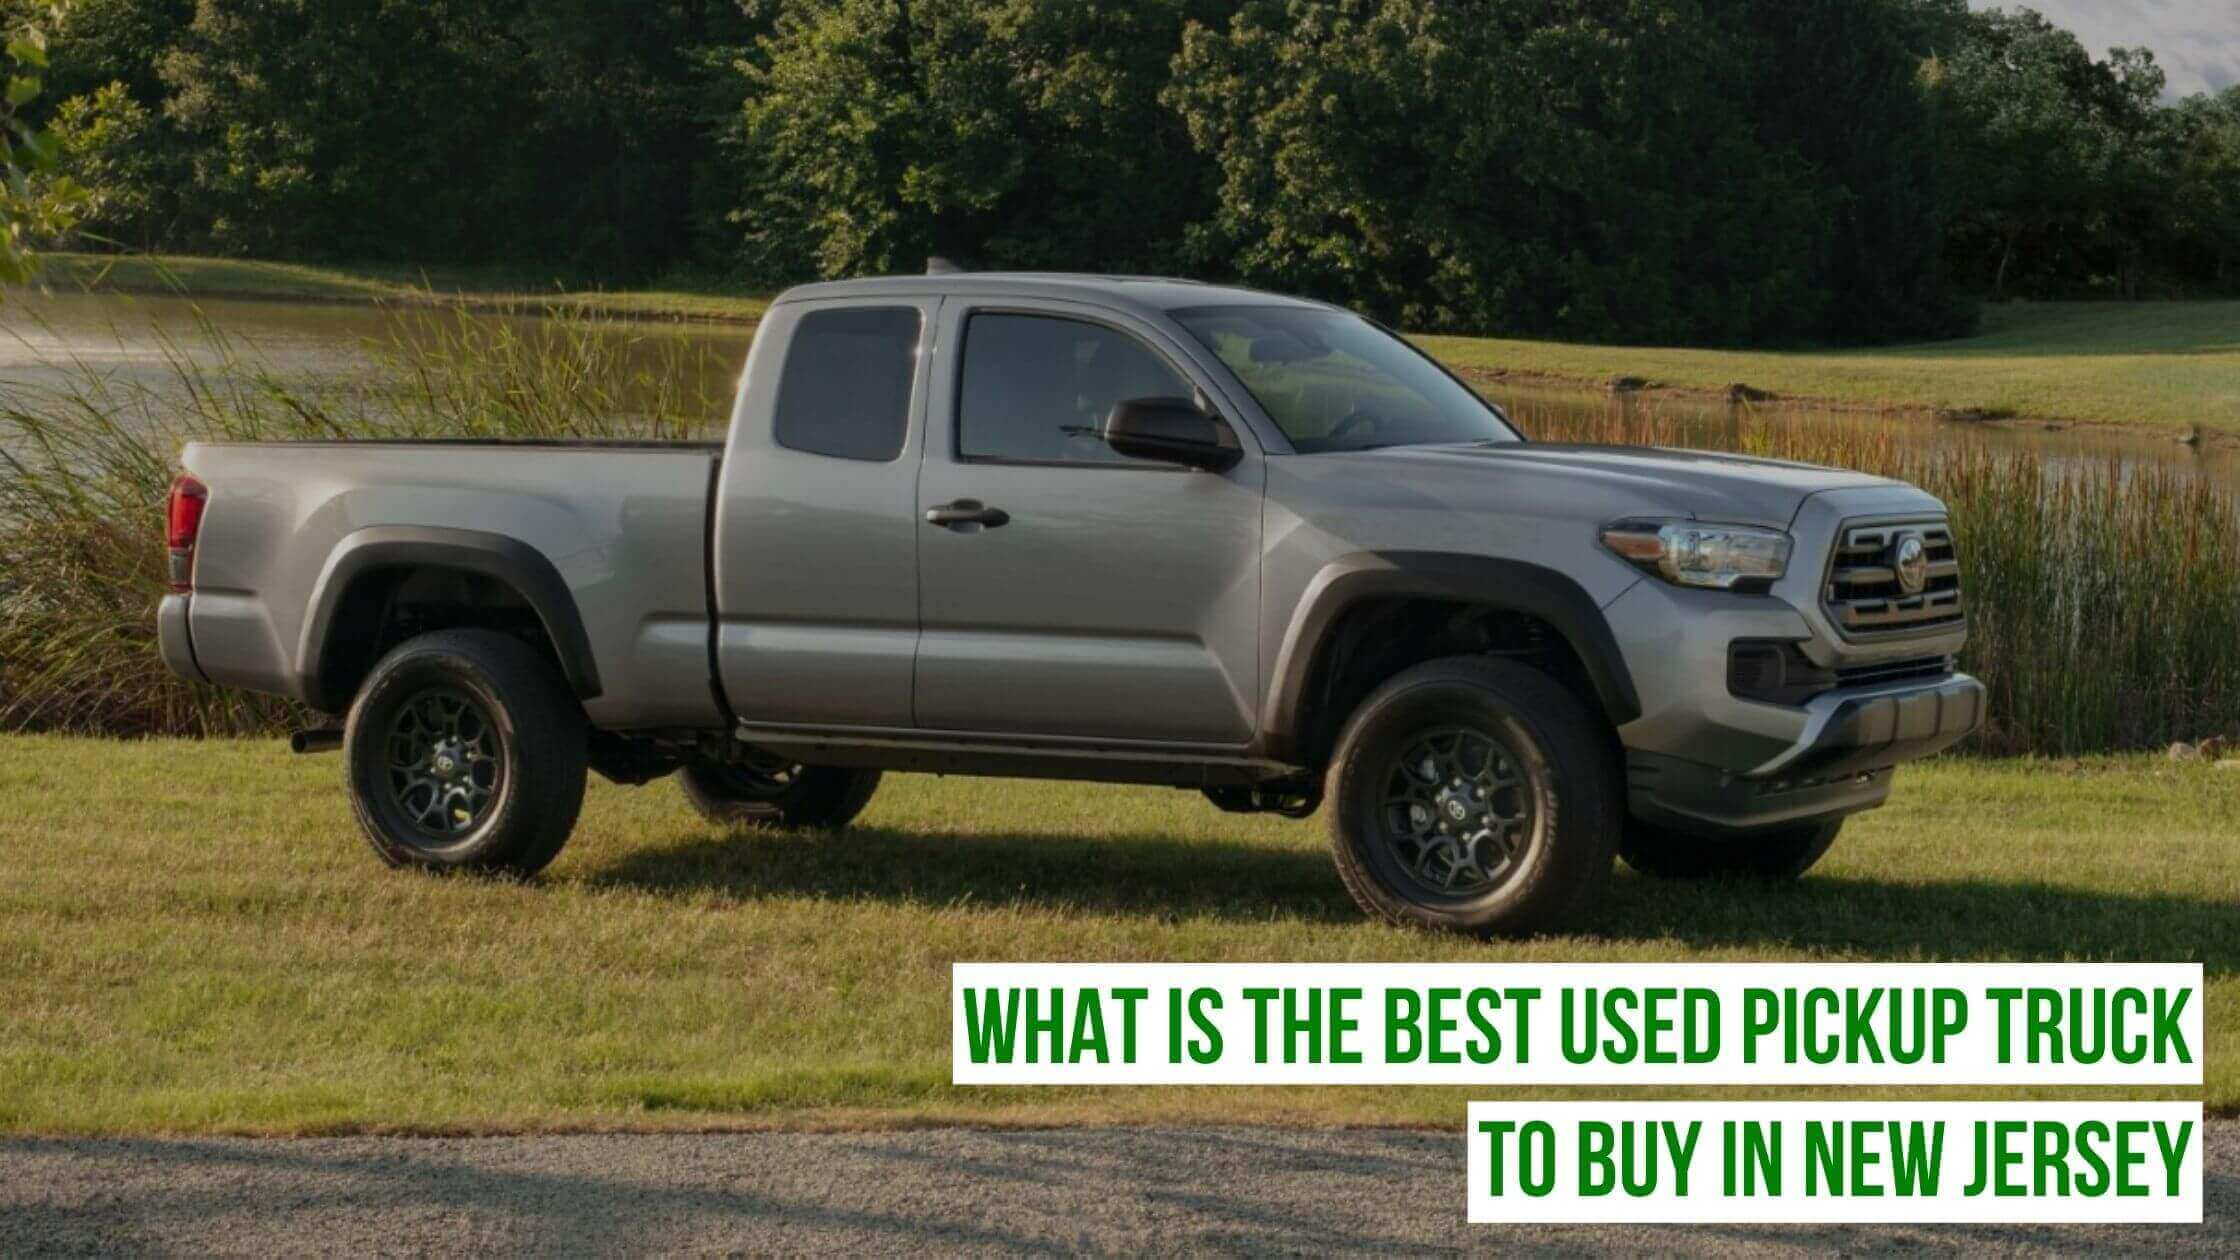 What Are The Best Used Pickup Trucks To Buy In Nj